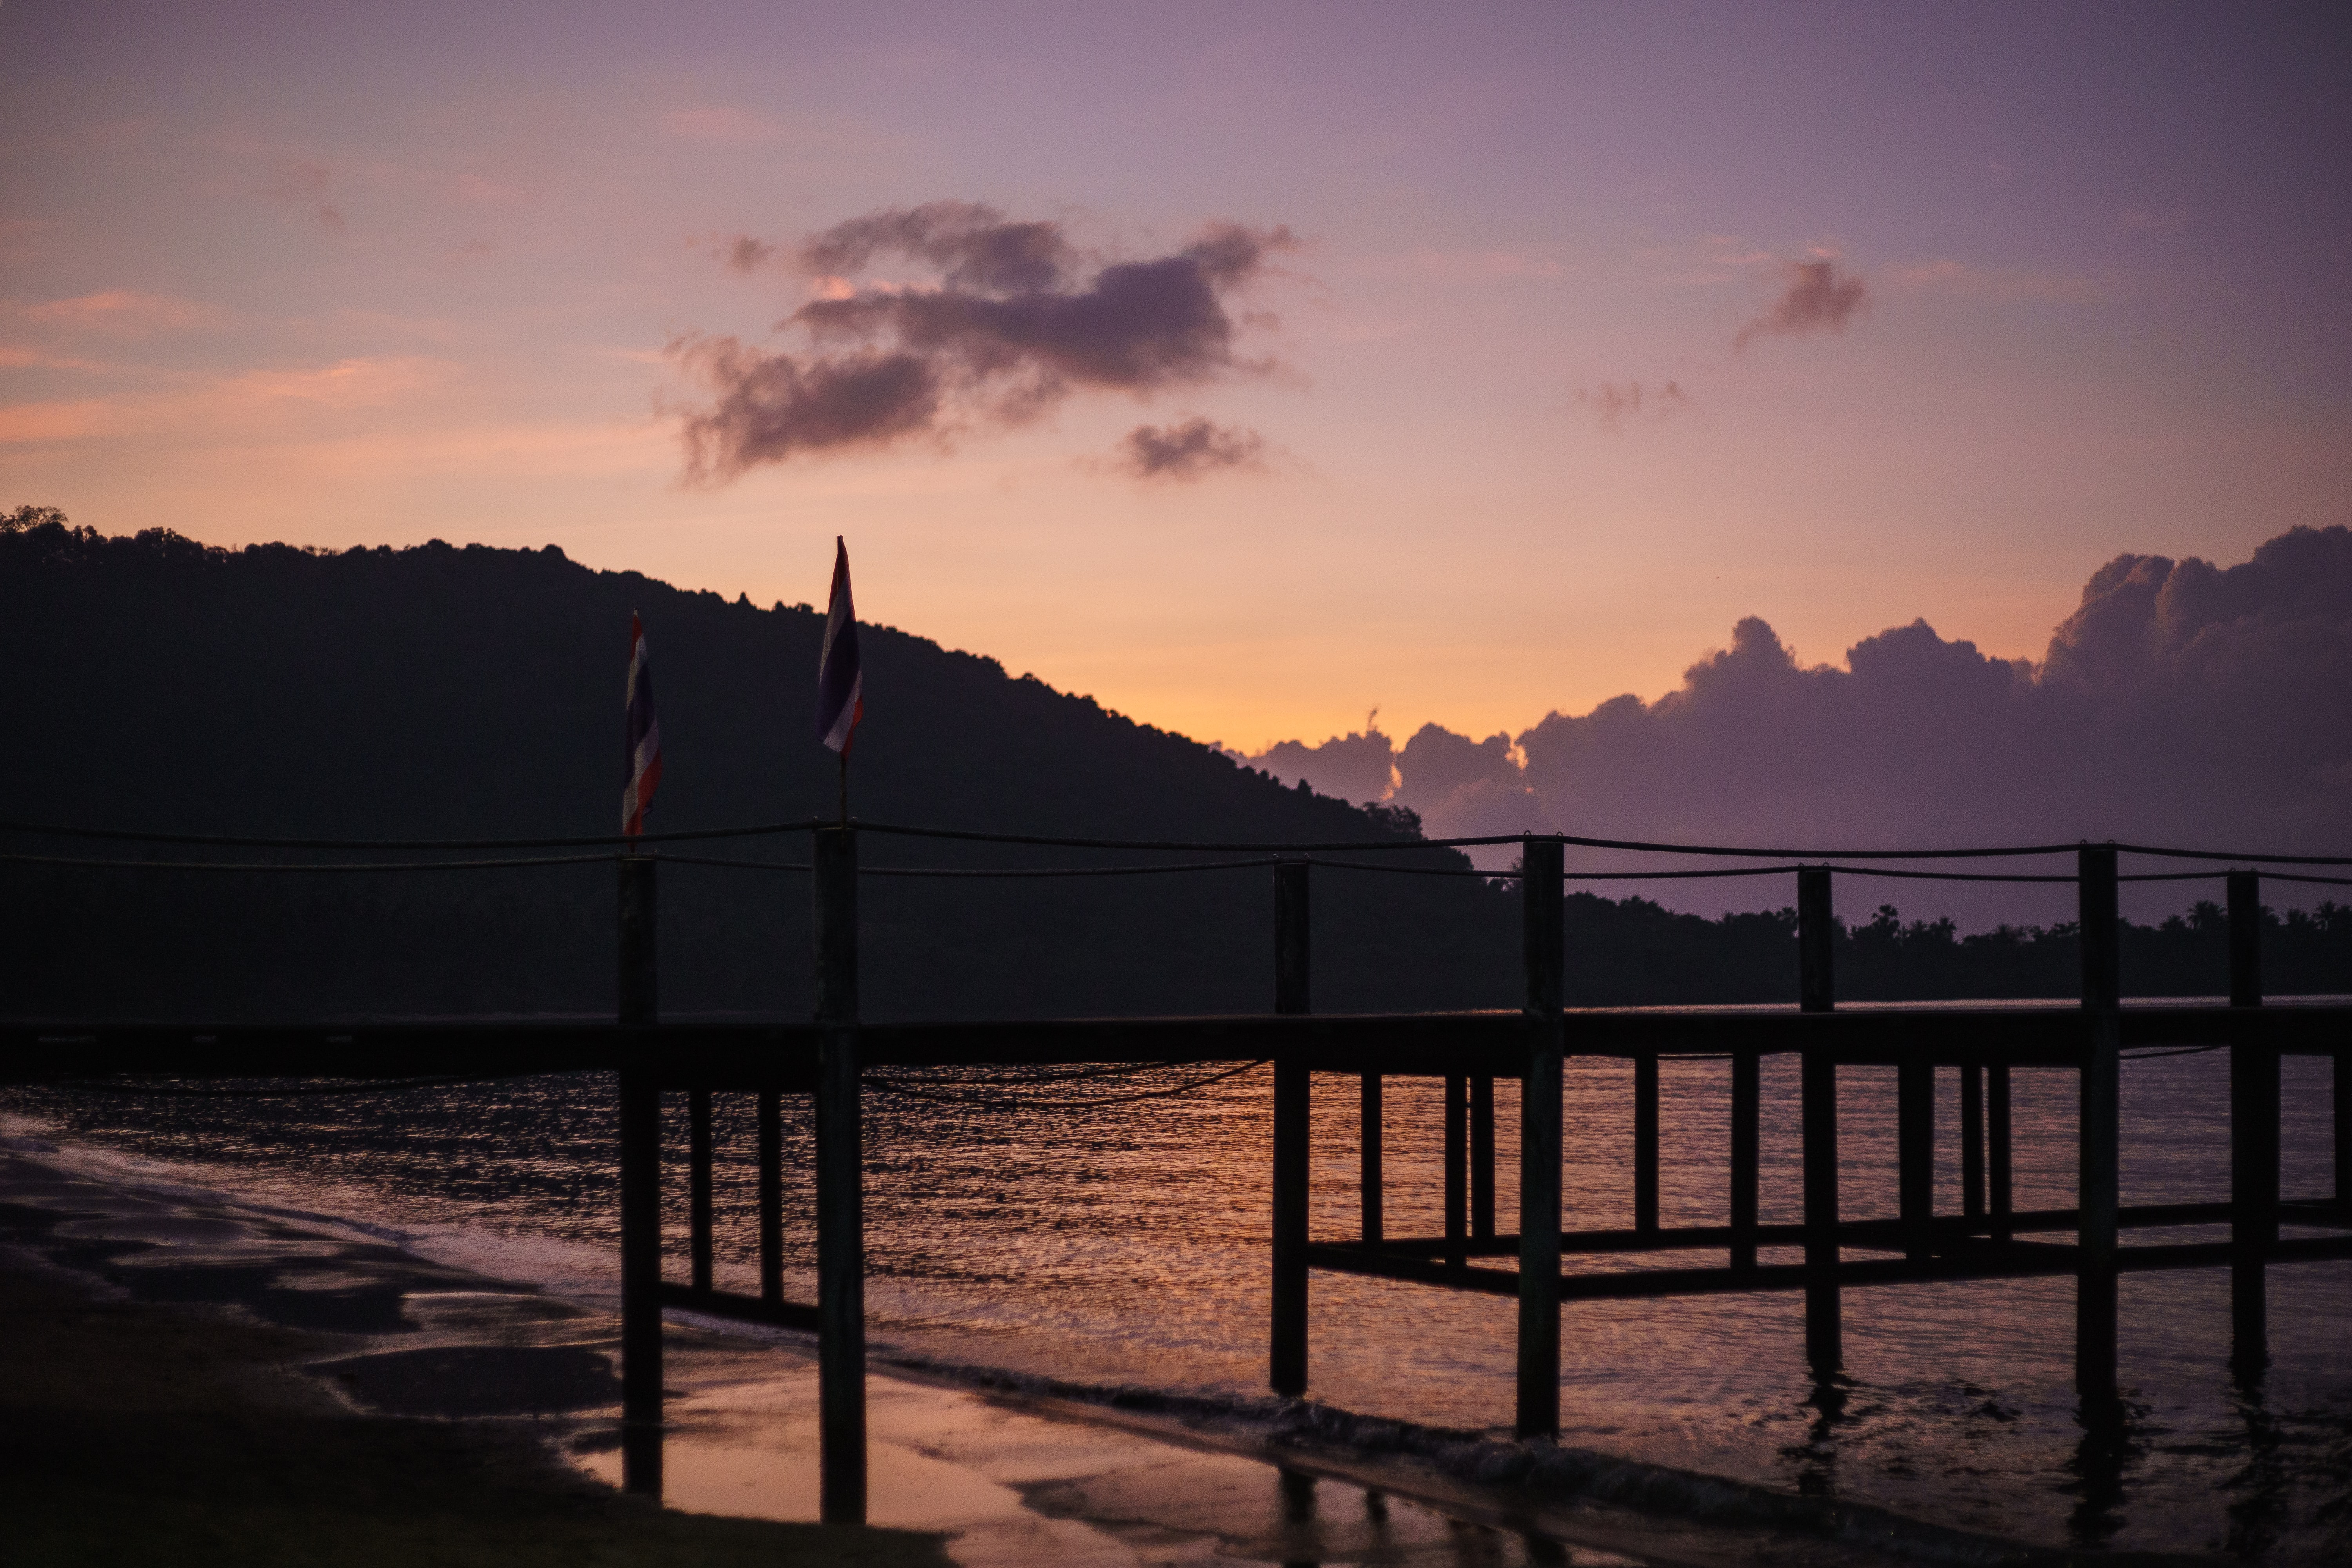 silhouette of wooden dock near mountain beside body of water during sunset